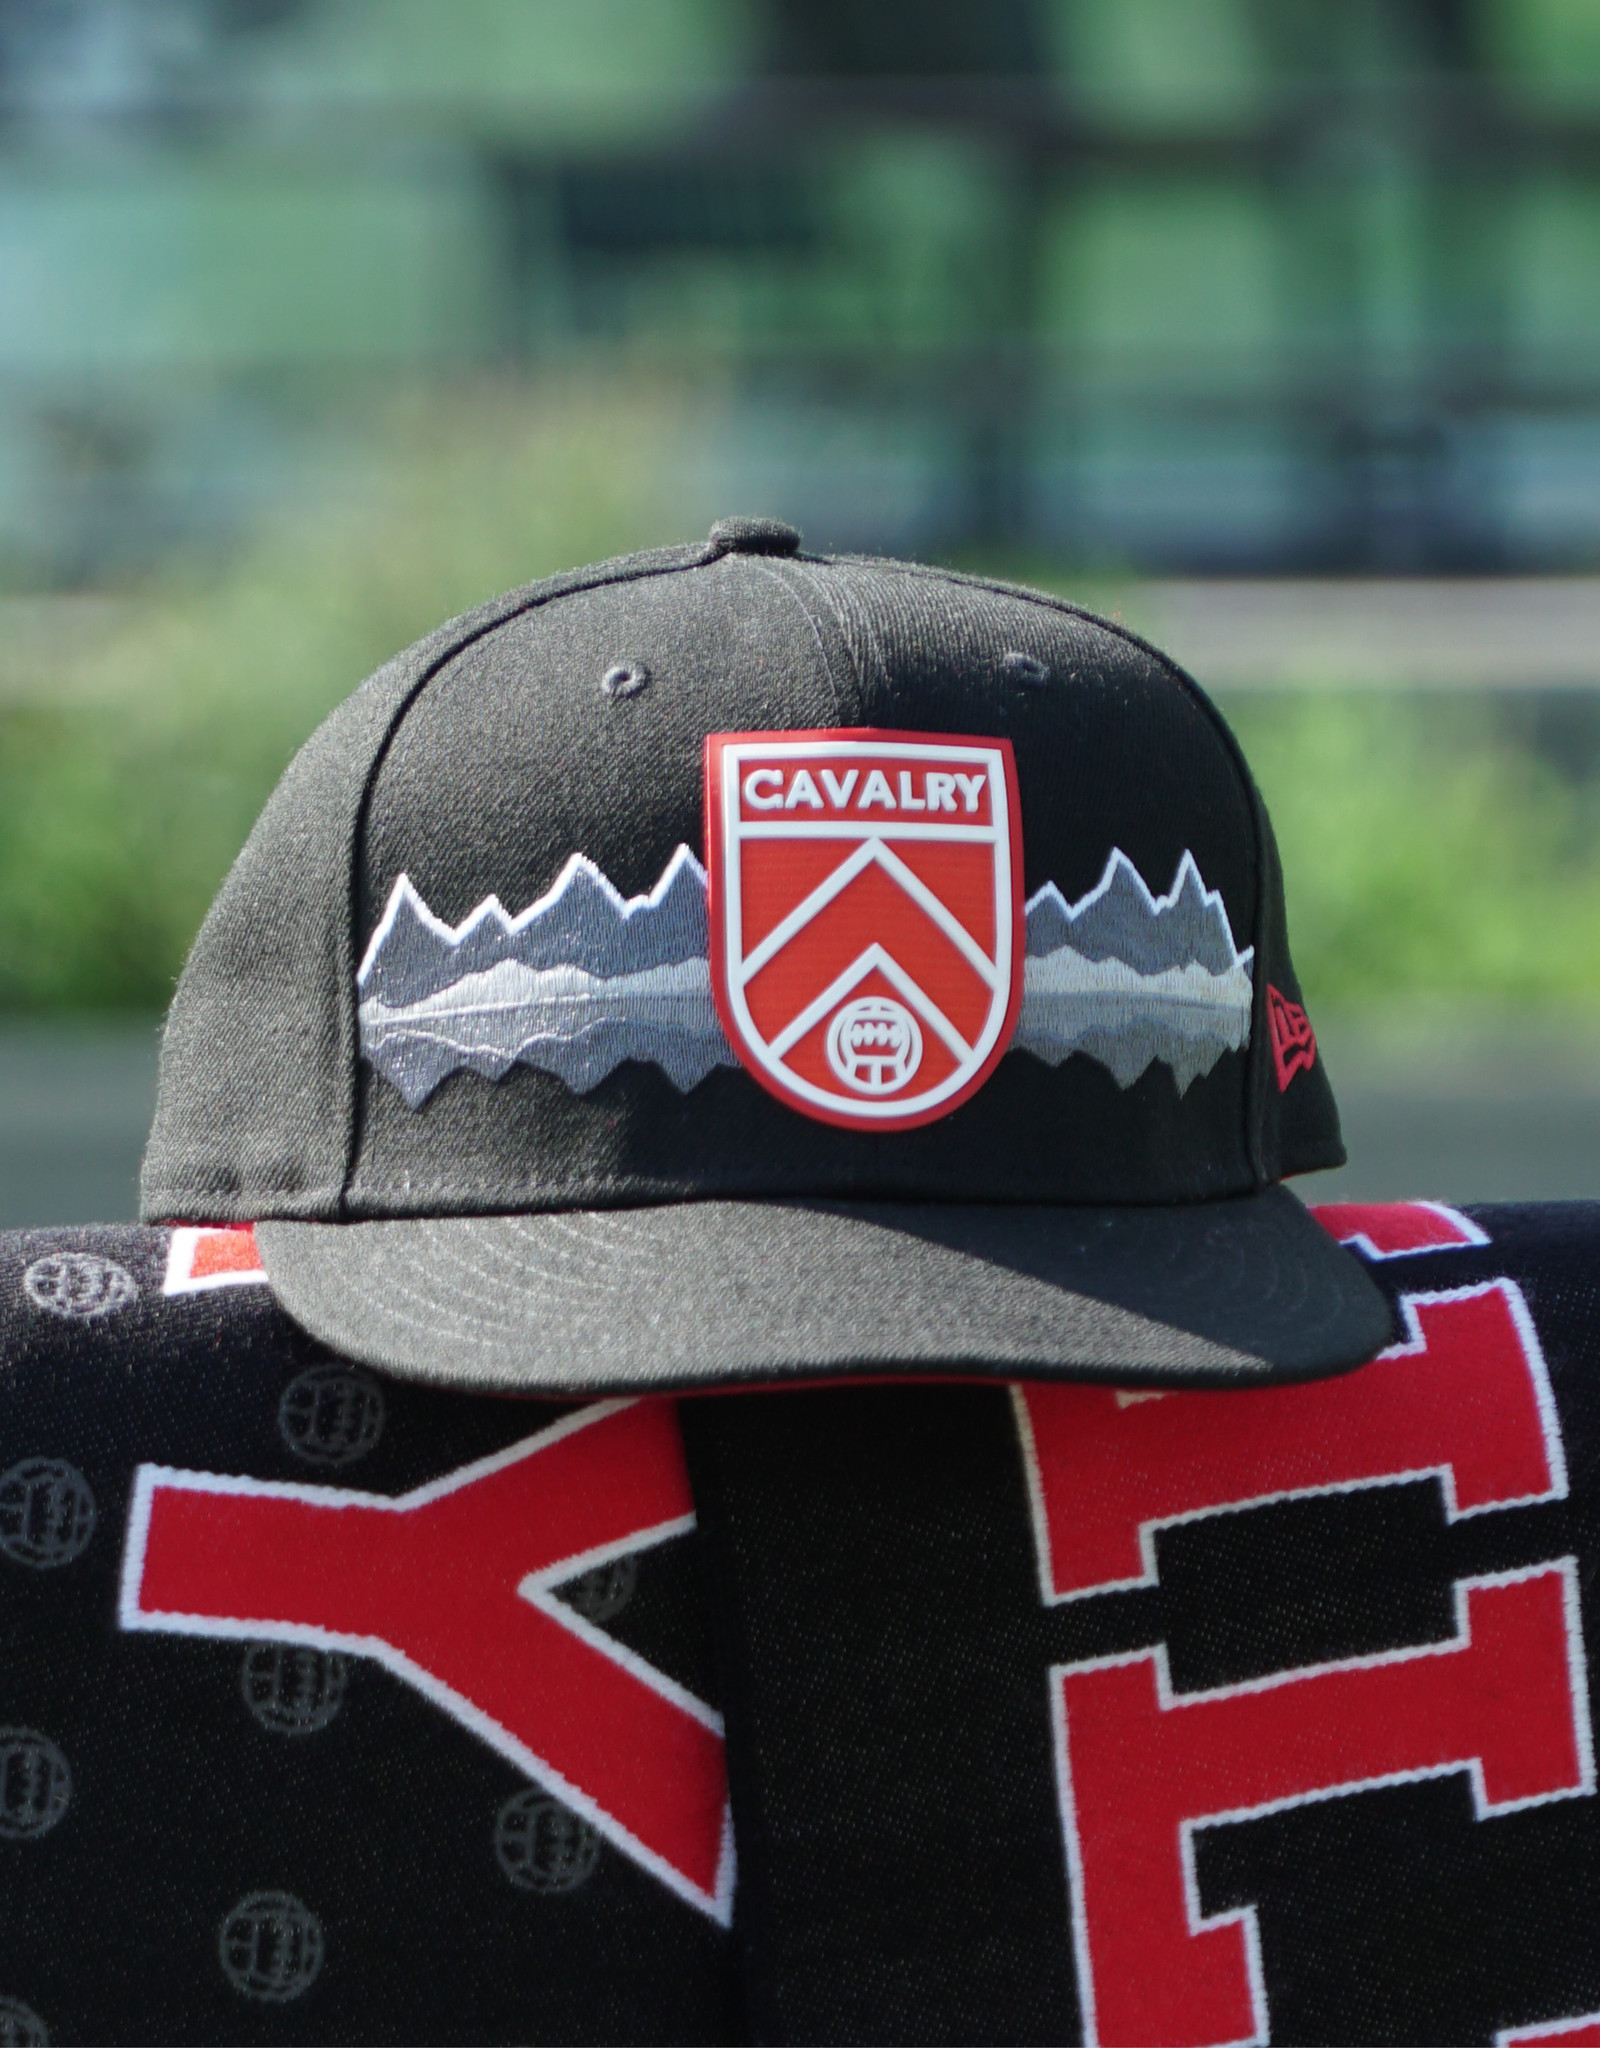 New Era Official On-Pitch Mountain City Cap